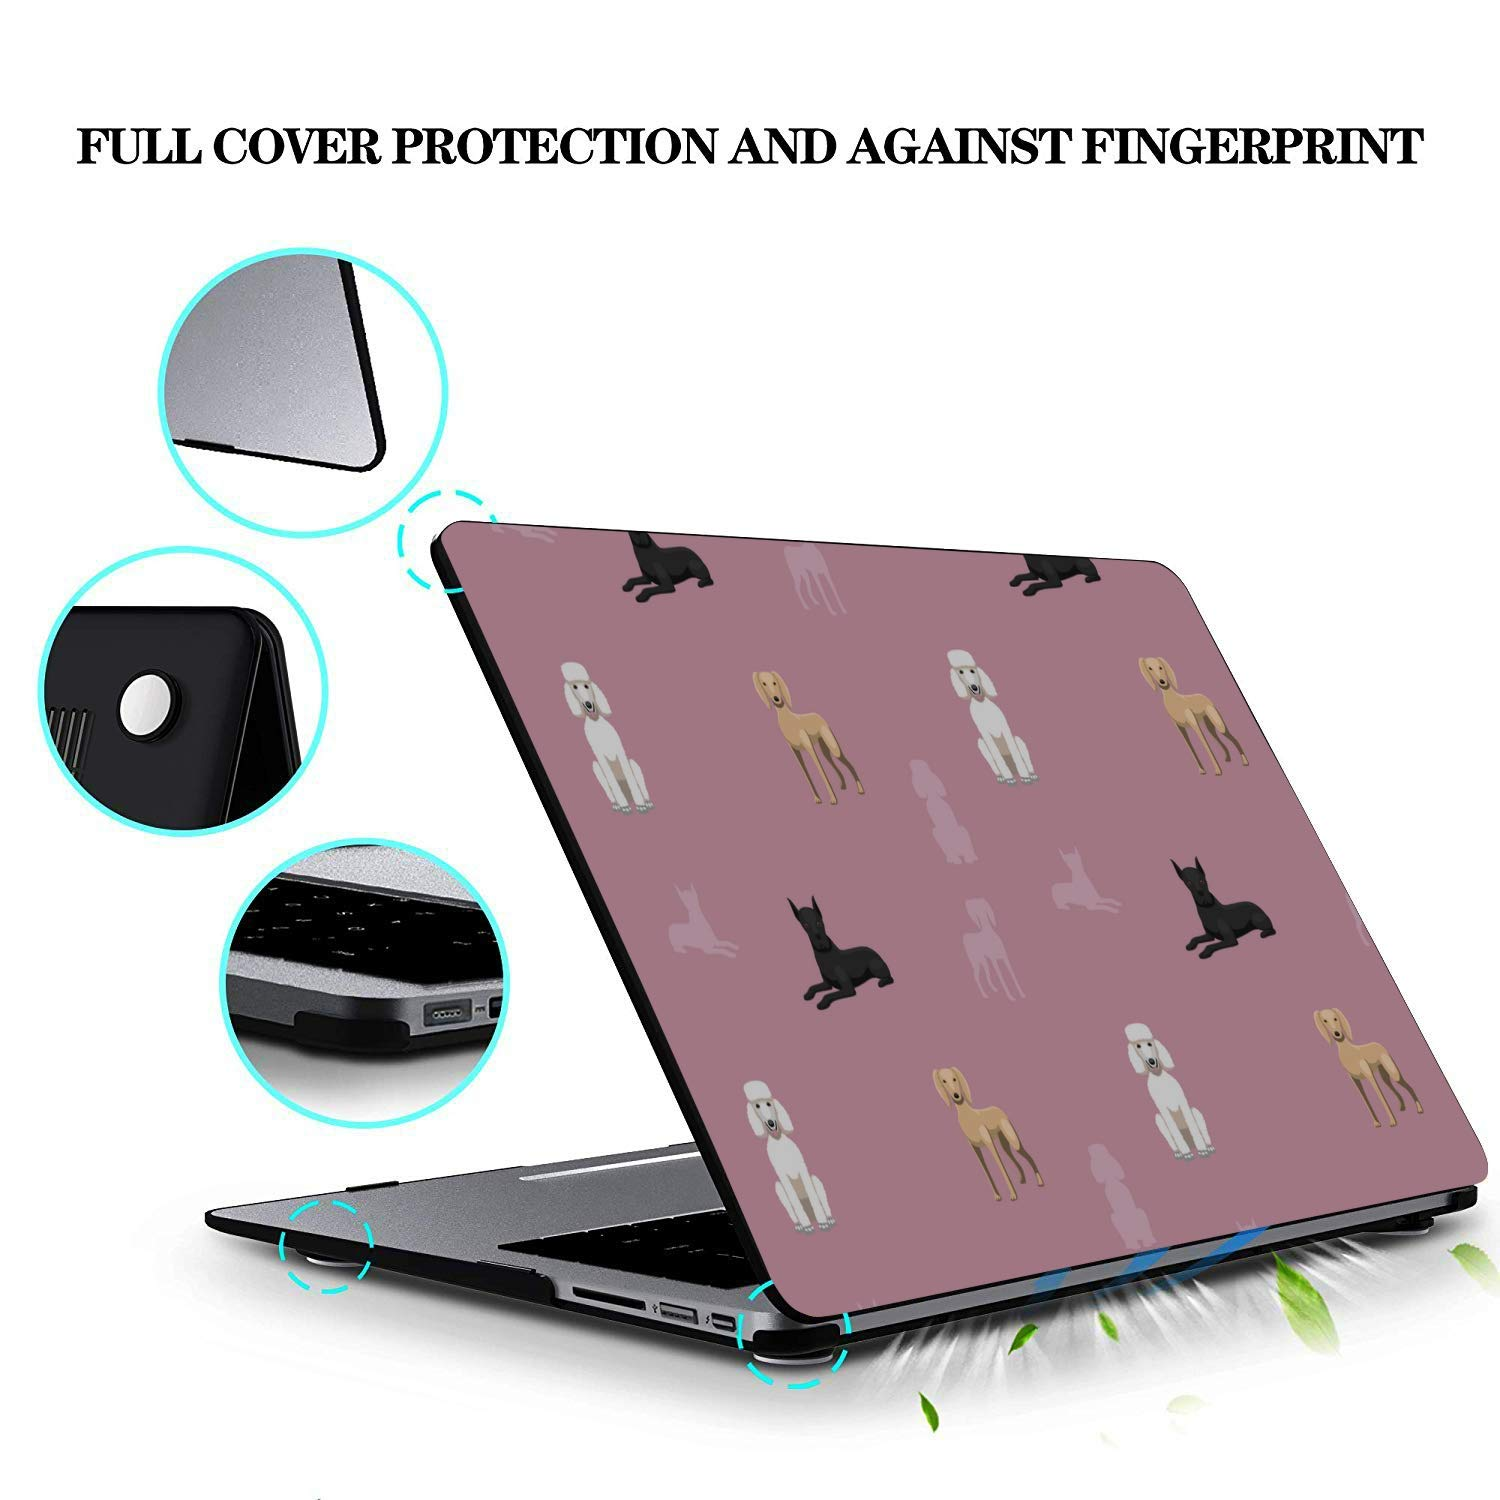 2018 MacBook Pro Case Smart Fierce Animal Pet Great Dane Plastic Hard Shell Compatible Mac Air 11 Pro 13 15 Mac Pro Cover Protection for MacBook 2016-2019 Version